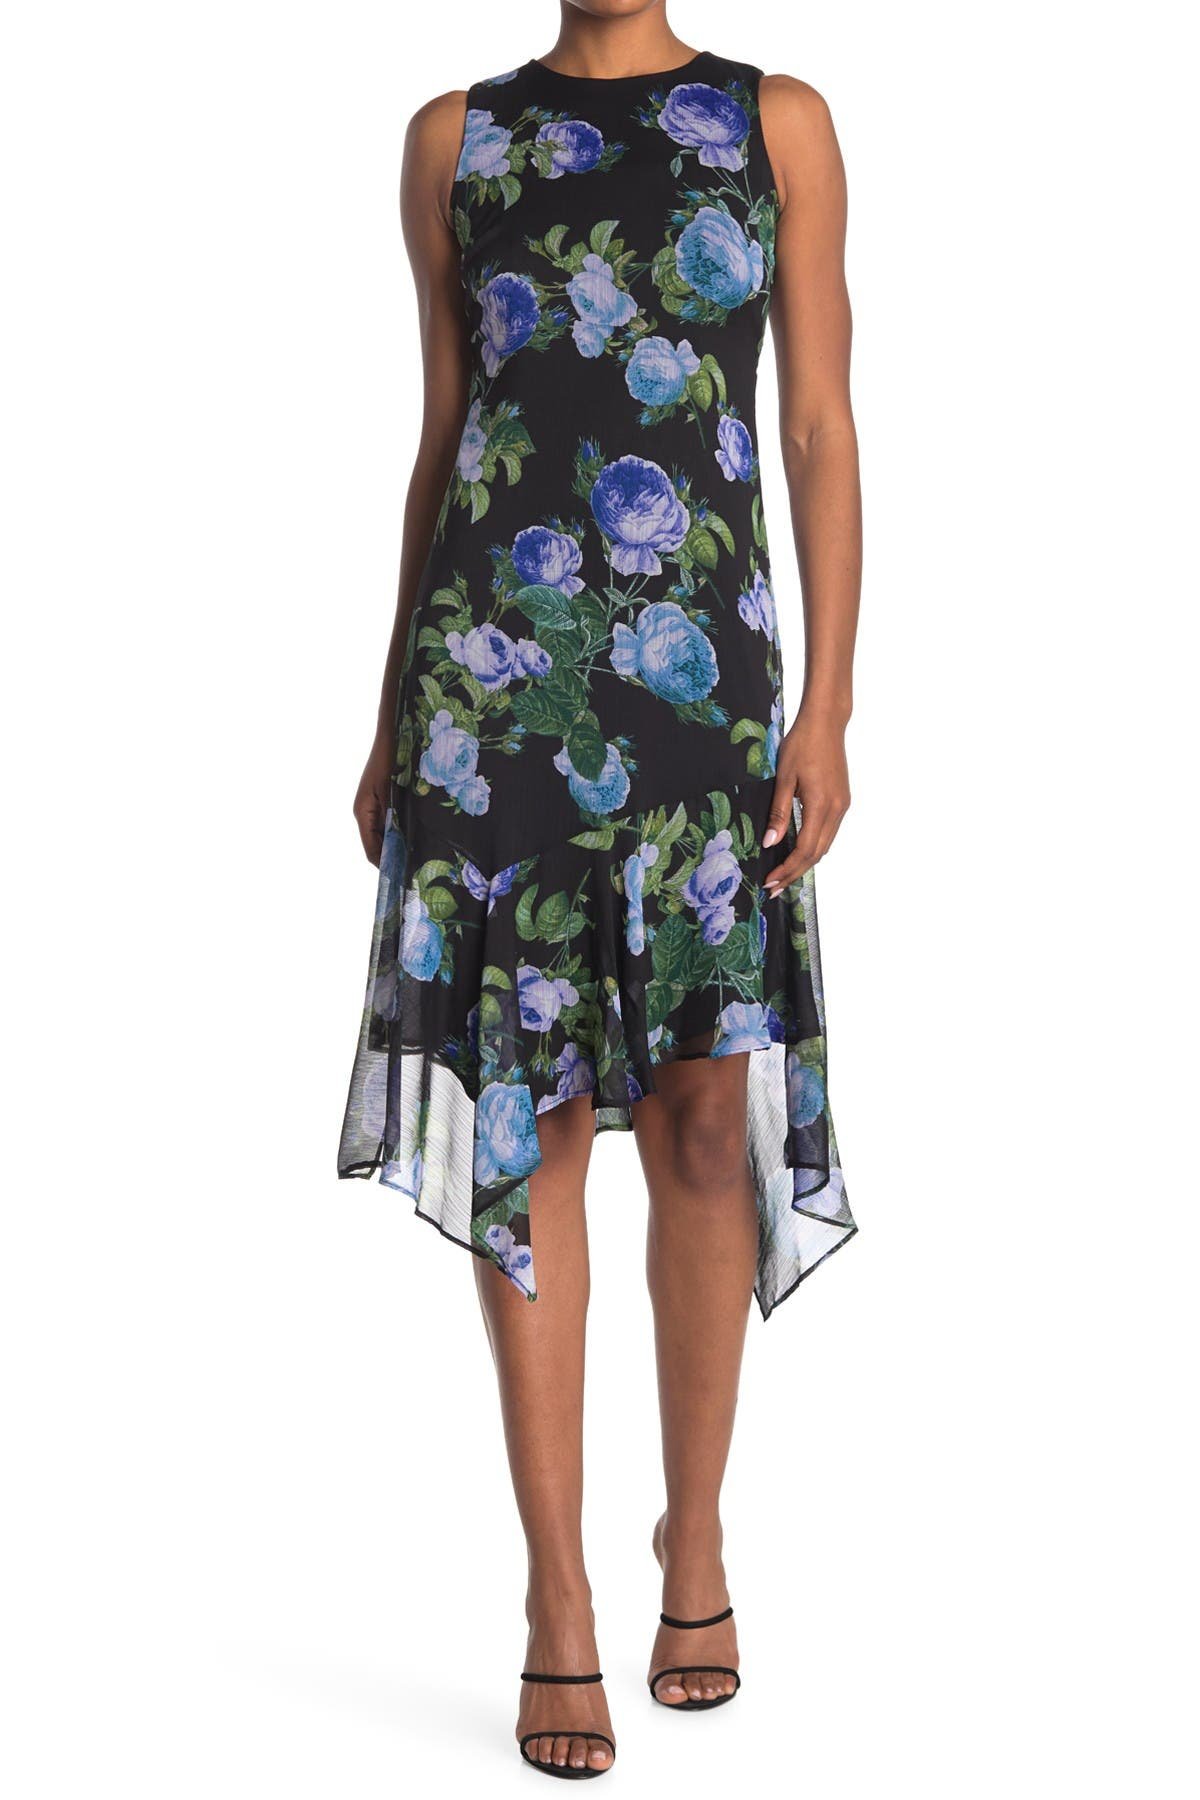 Image of Calvin Klein Rose Floral Print High/Low Midi Dress